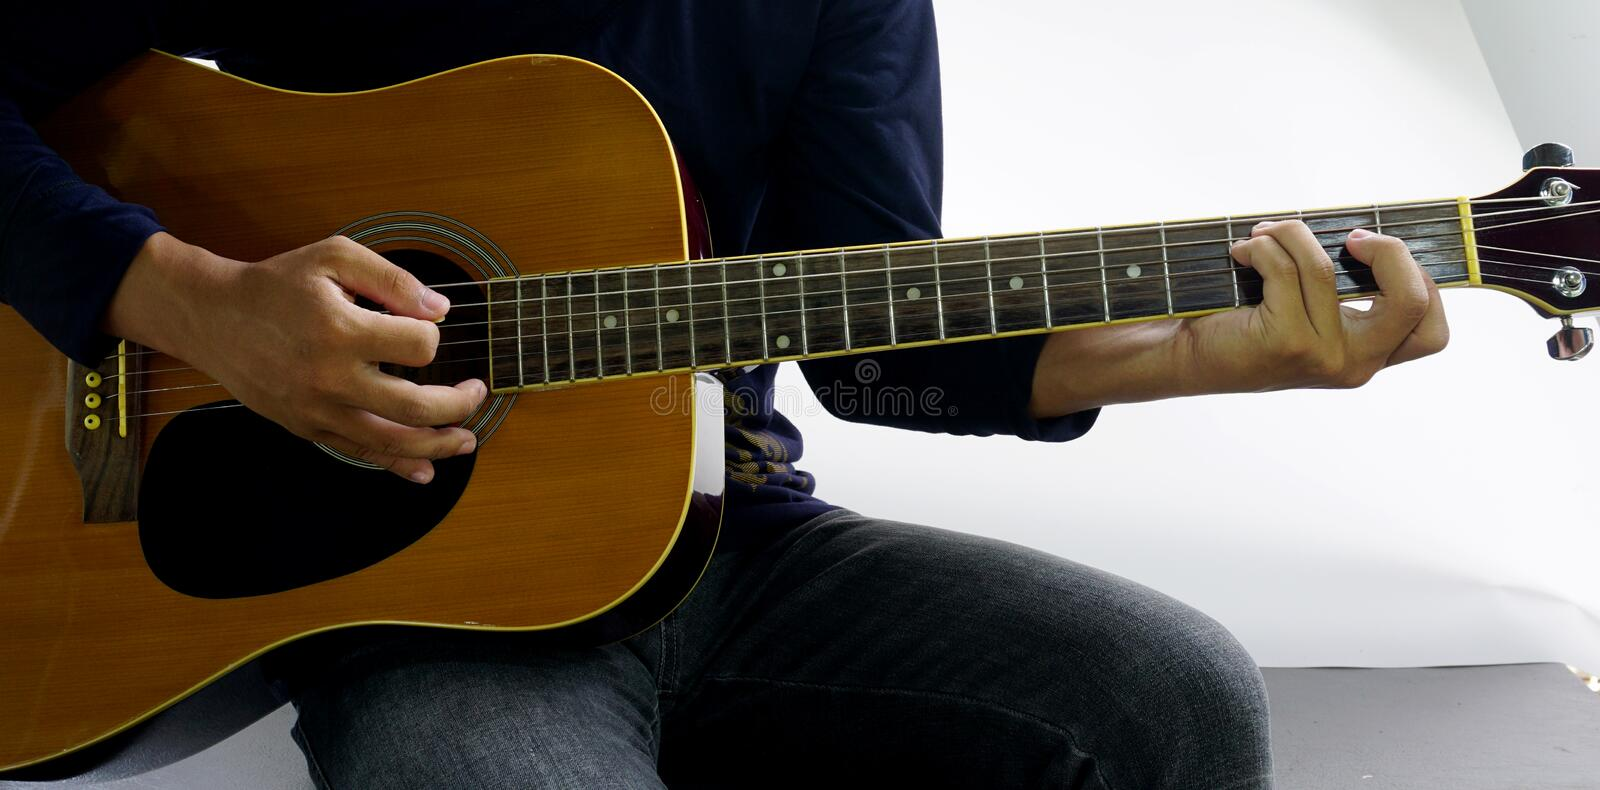 Play A Guitar Chord Csus4 Stock Image Image Of Song 95723407